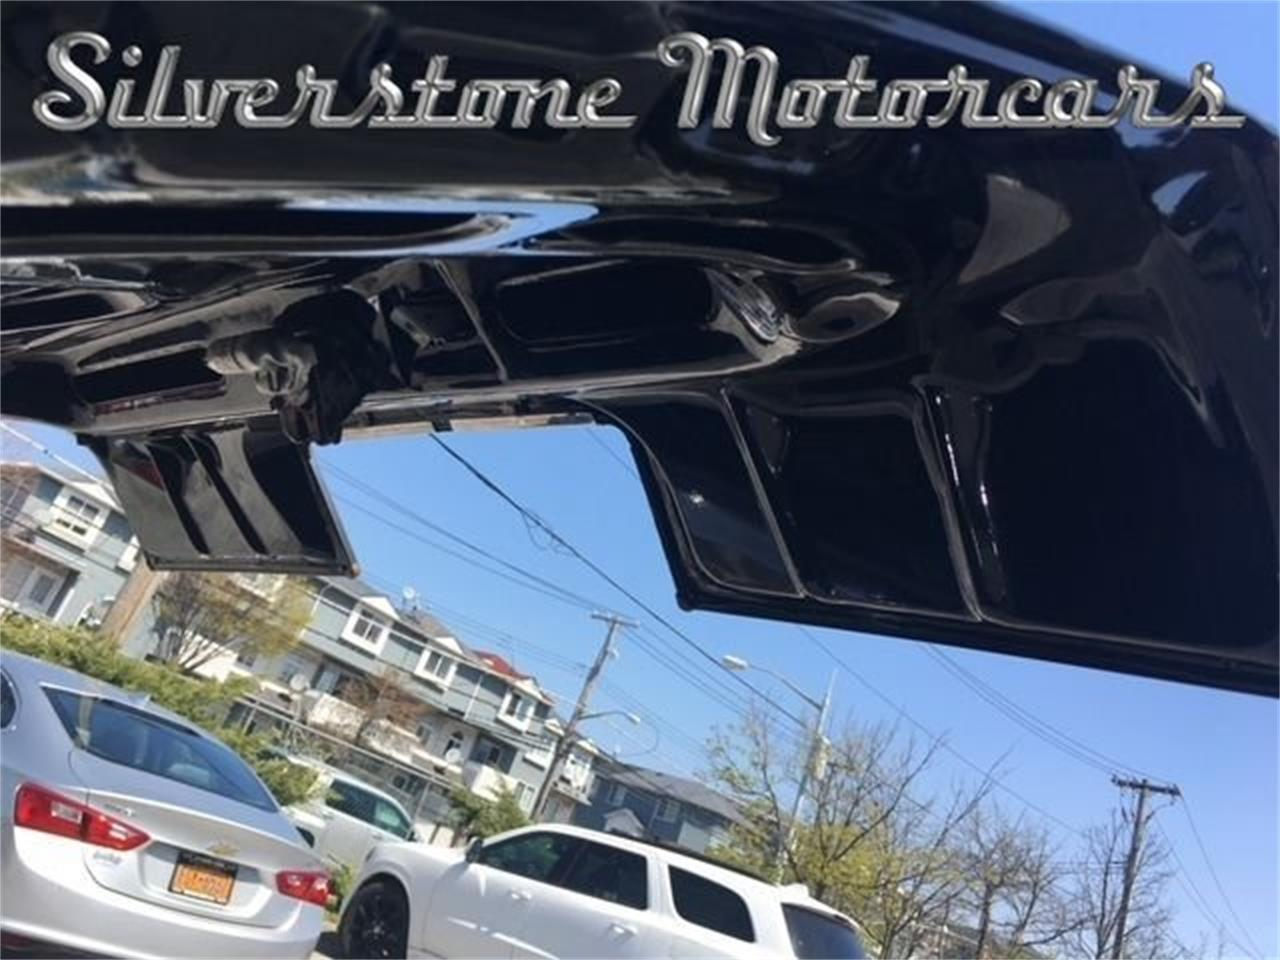 Large Picture of 1981 Cadillac Fleetwood located in Massachusetts - $45,000.00 Offered by Silverstone Motorcars - NIW1